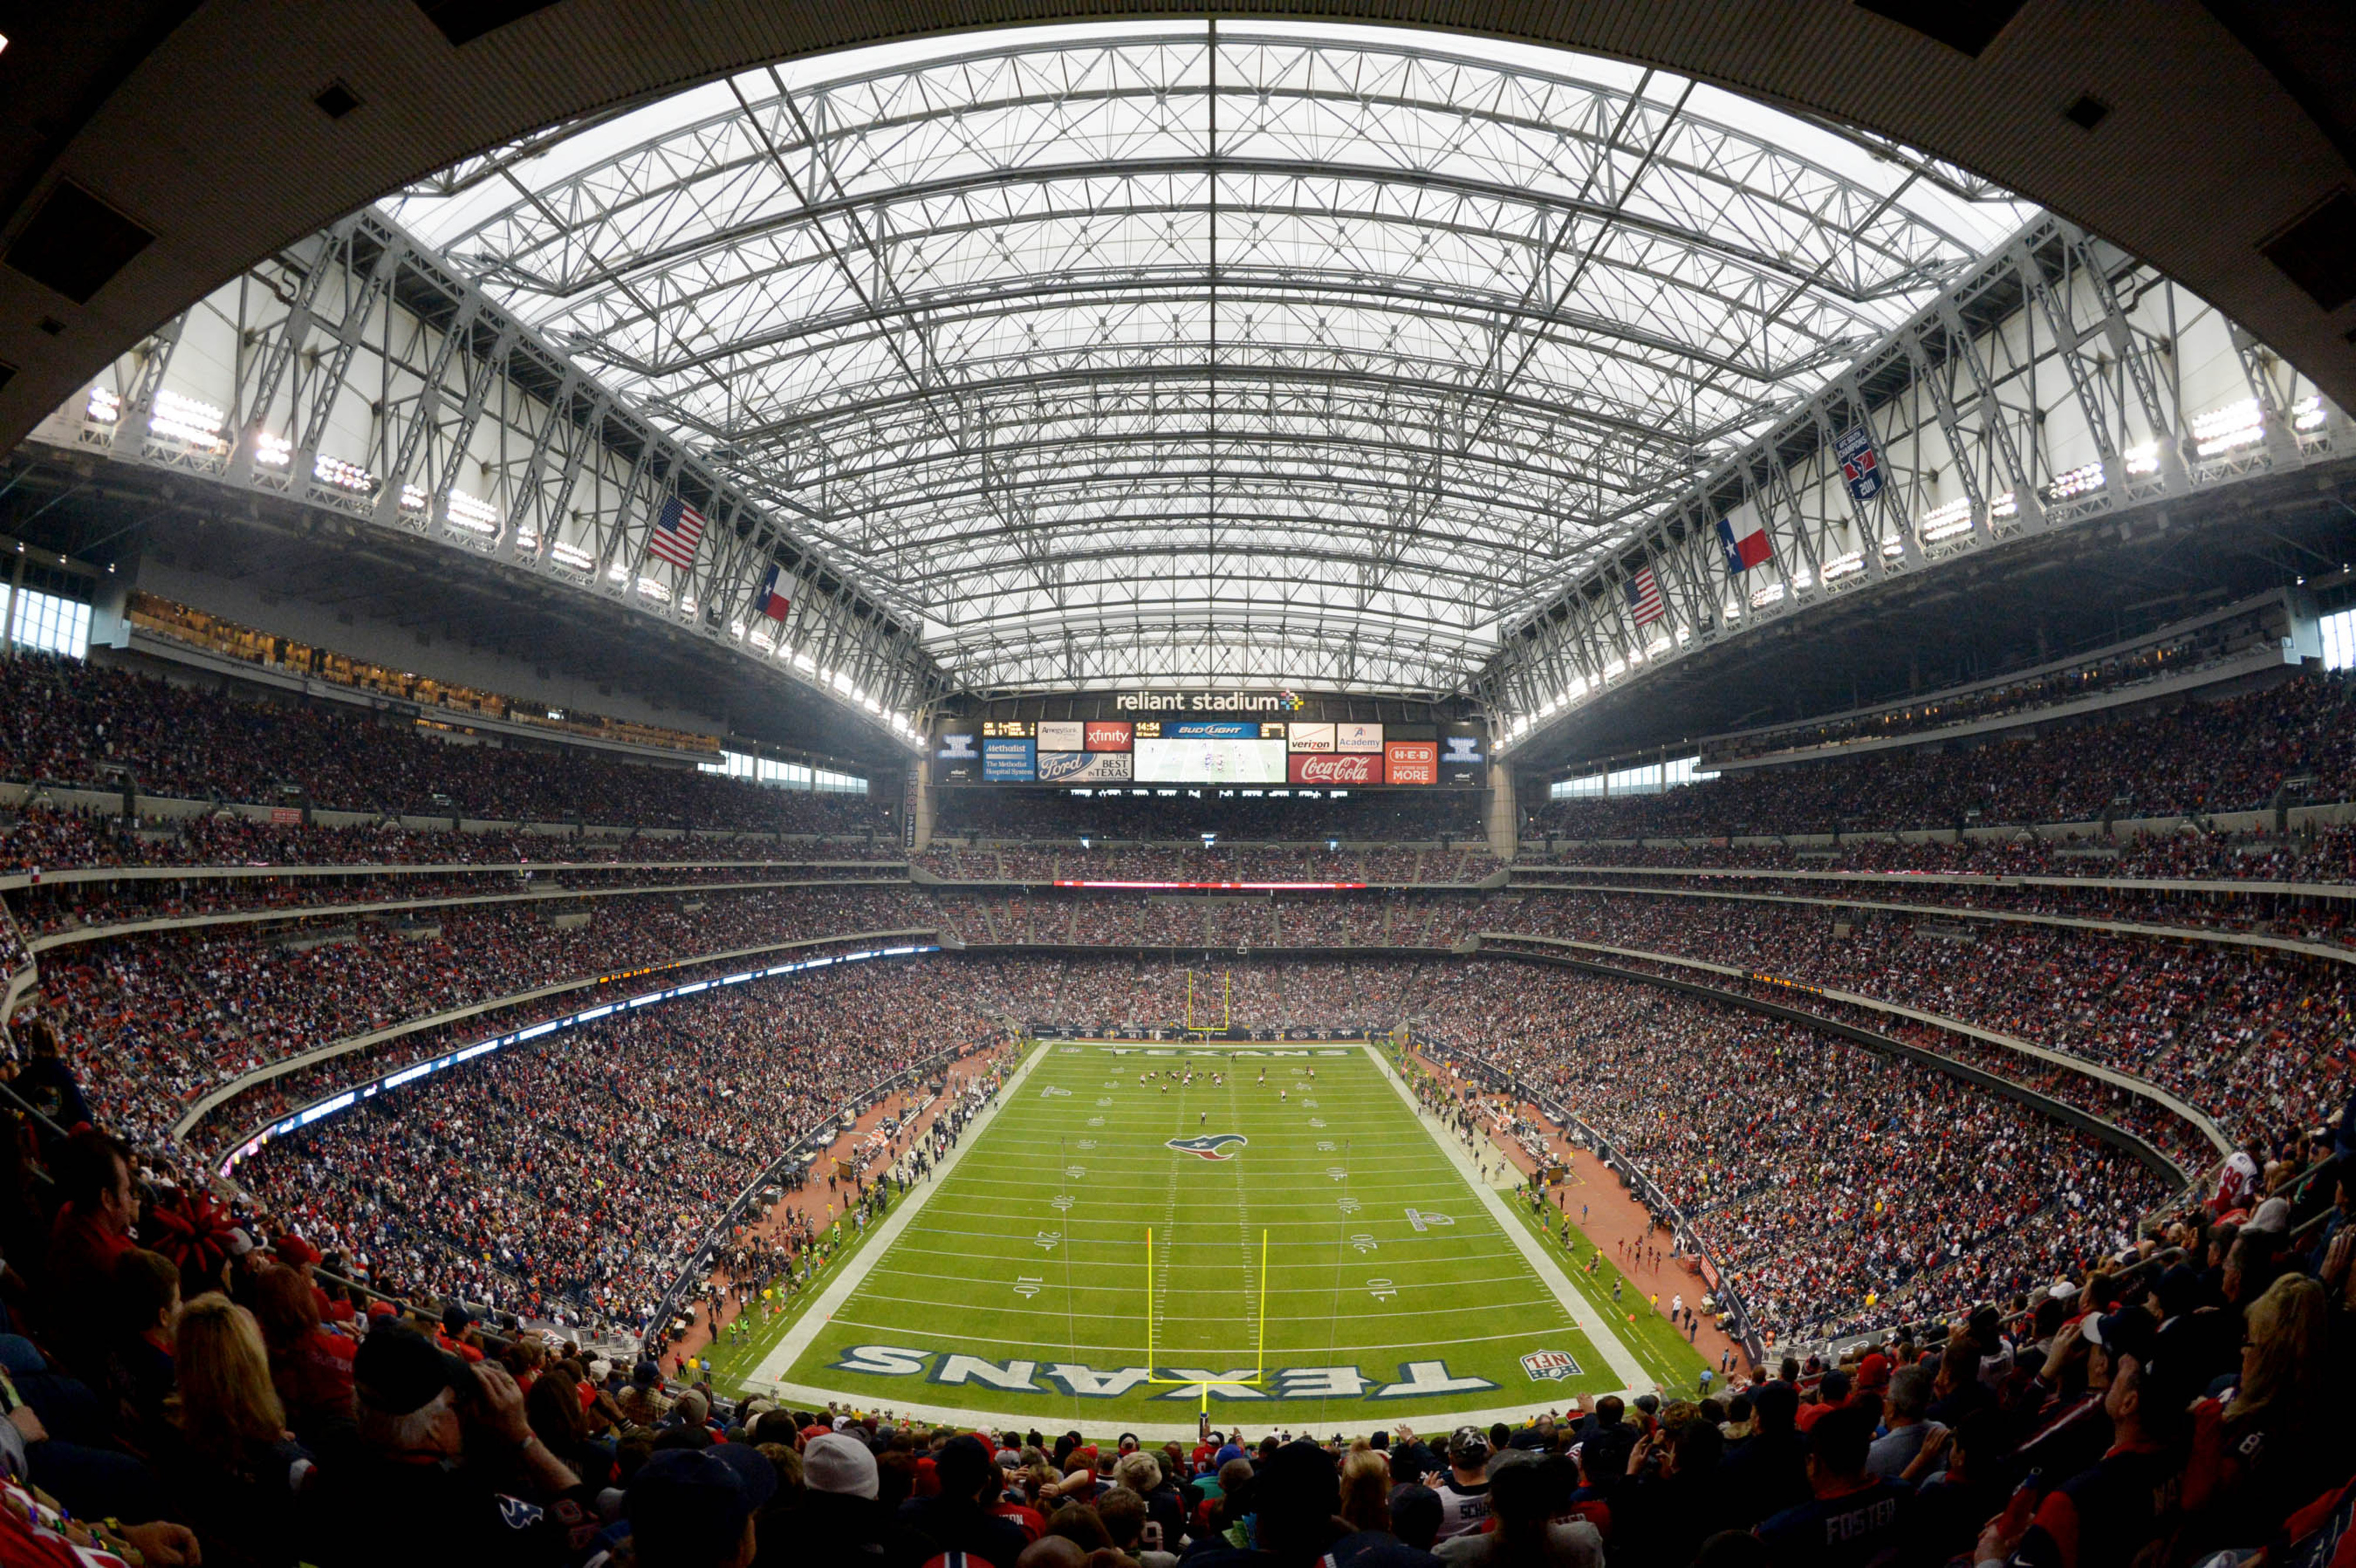 This will be the site of next week's AFC Championship Game if the Texans upset the Patriots tomorrow.